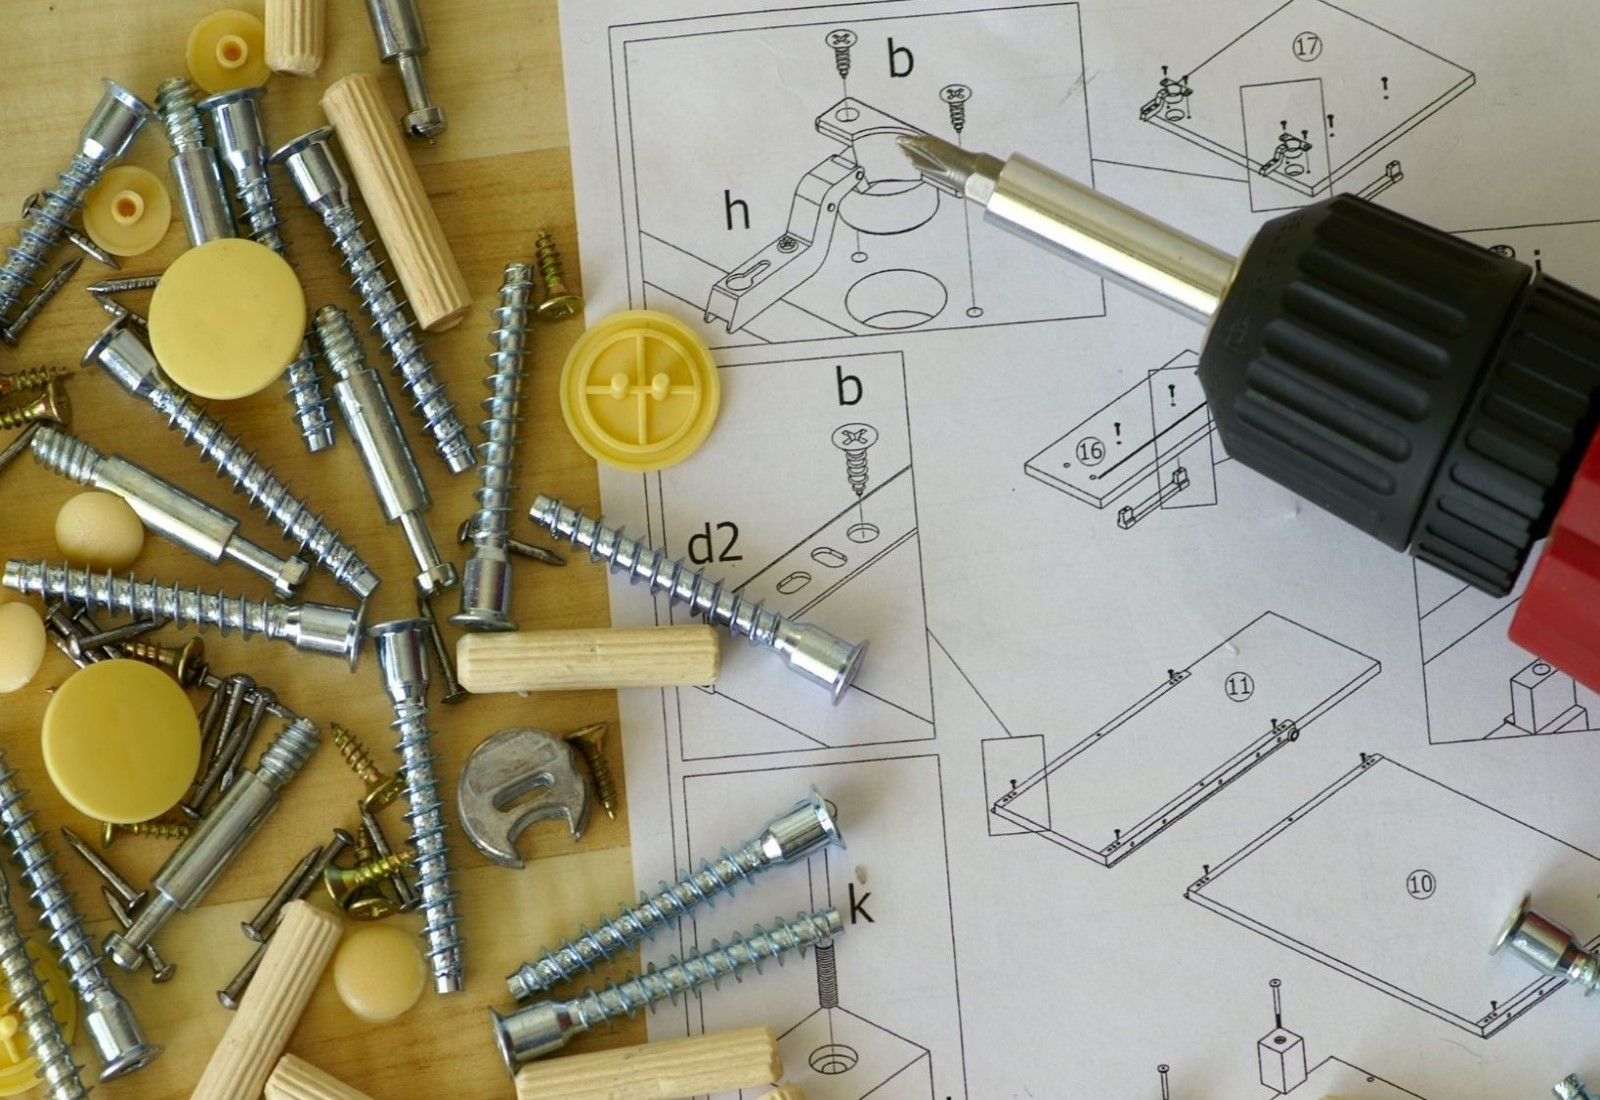 Commercial Kitset Flatpack assembly tools